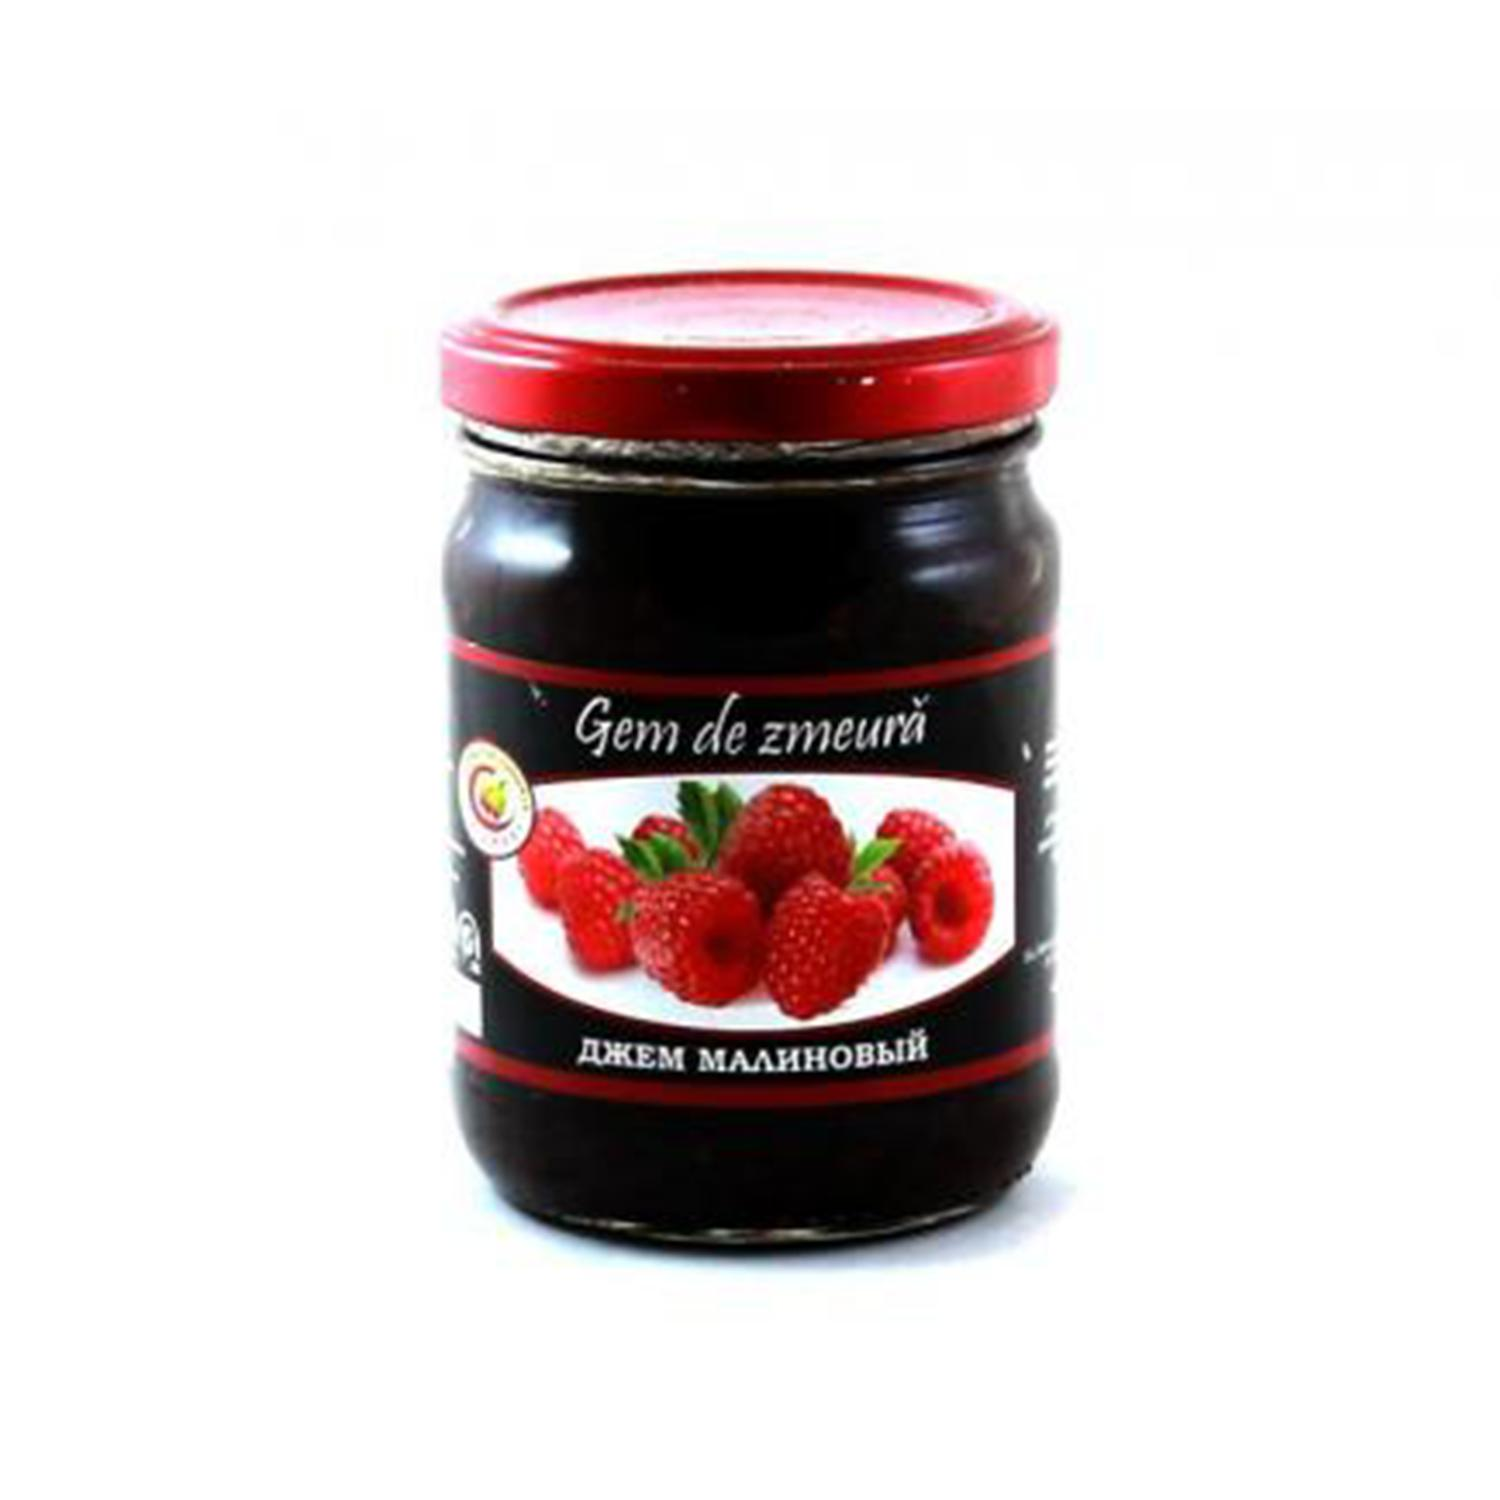 raspberry jam fabrica de conserve din c l ra i local goods made in moldova canned products. Black Bedroom Furniture Sets. Home Design Ideas